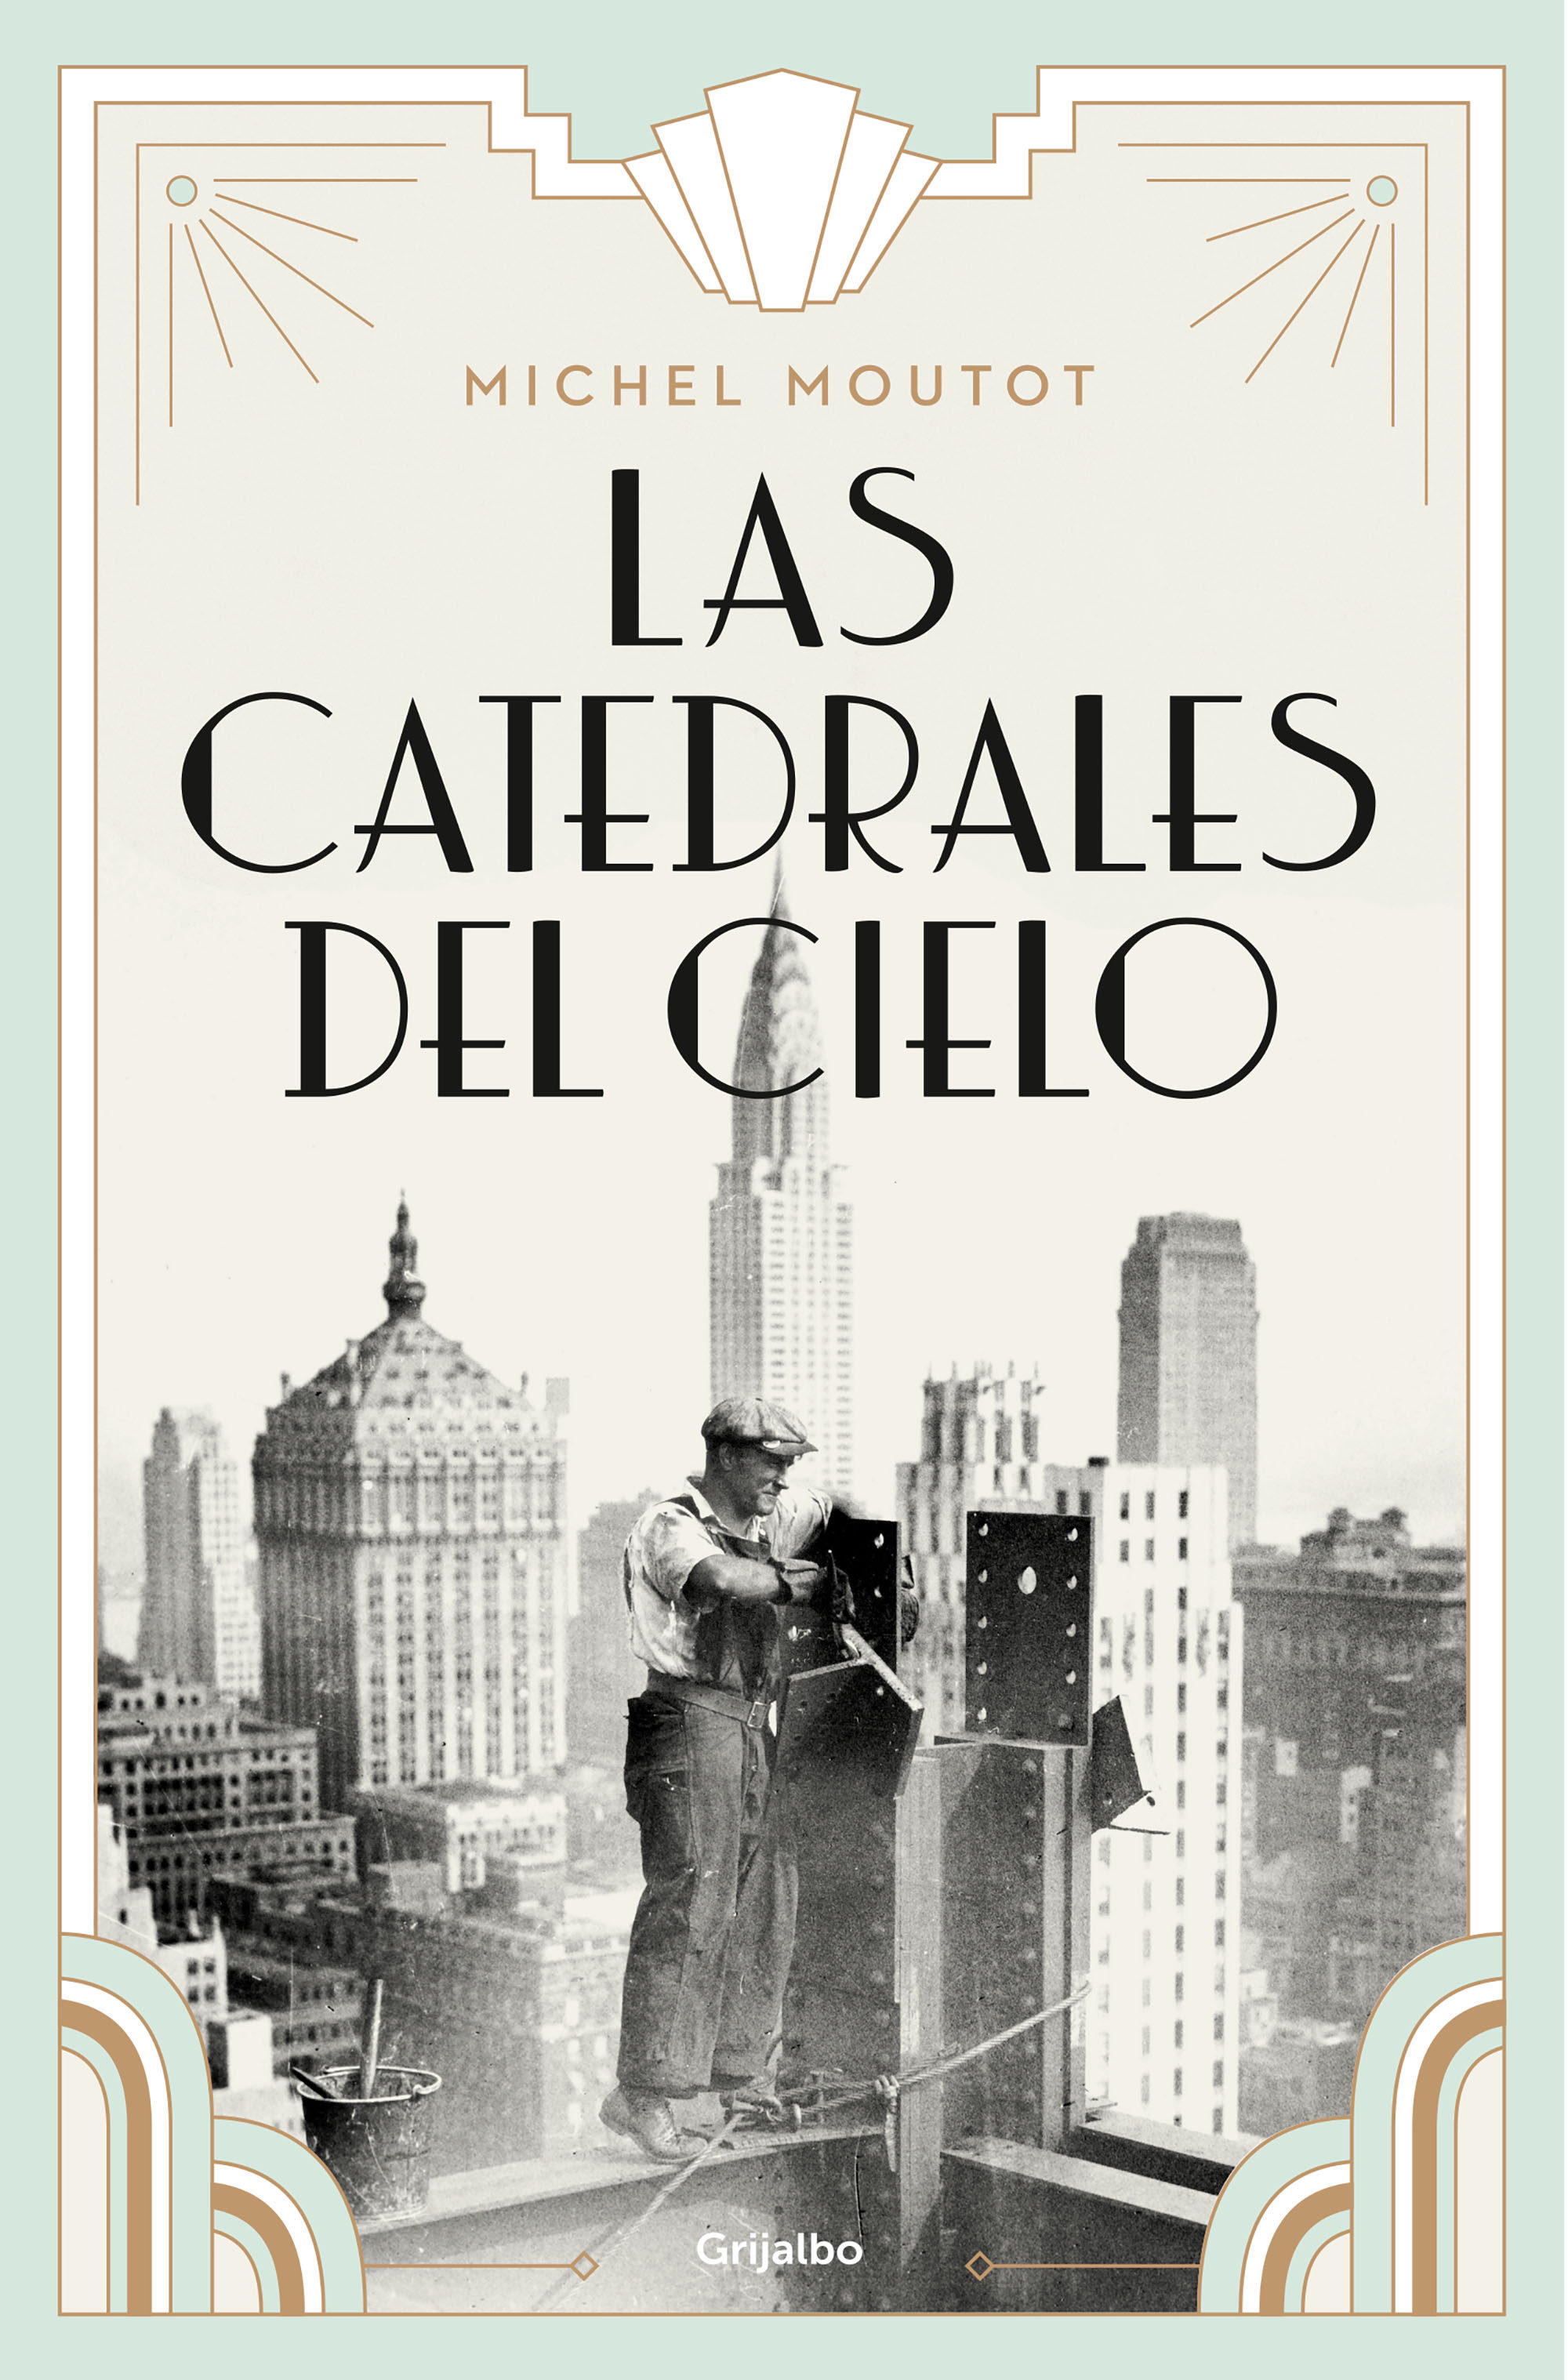 Las Catedrales Del Cielo Ebook Michel Moutot Descargar Libro Pdf